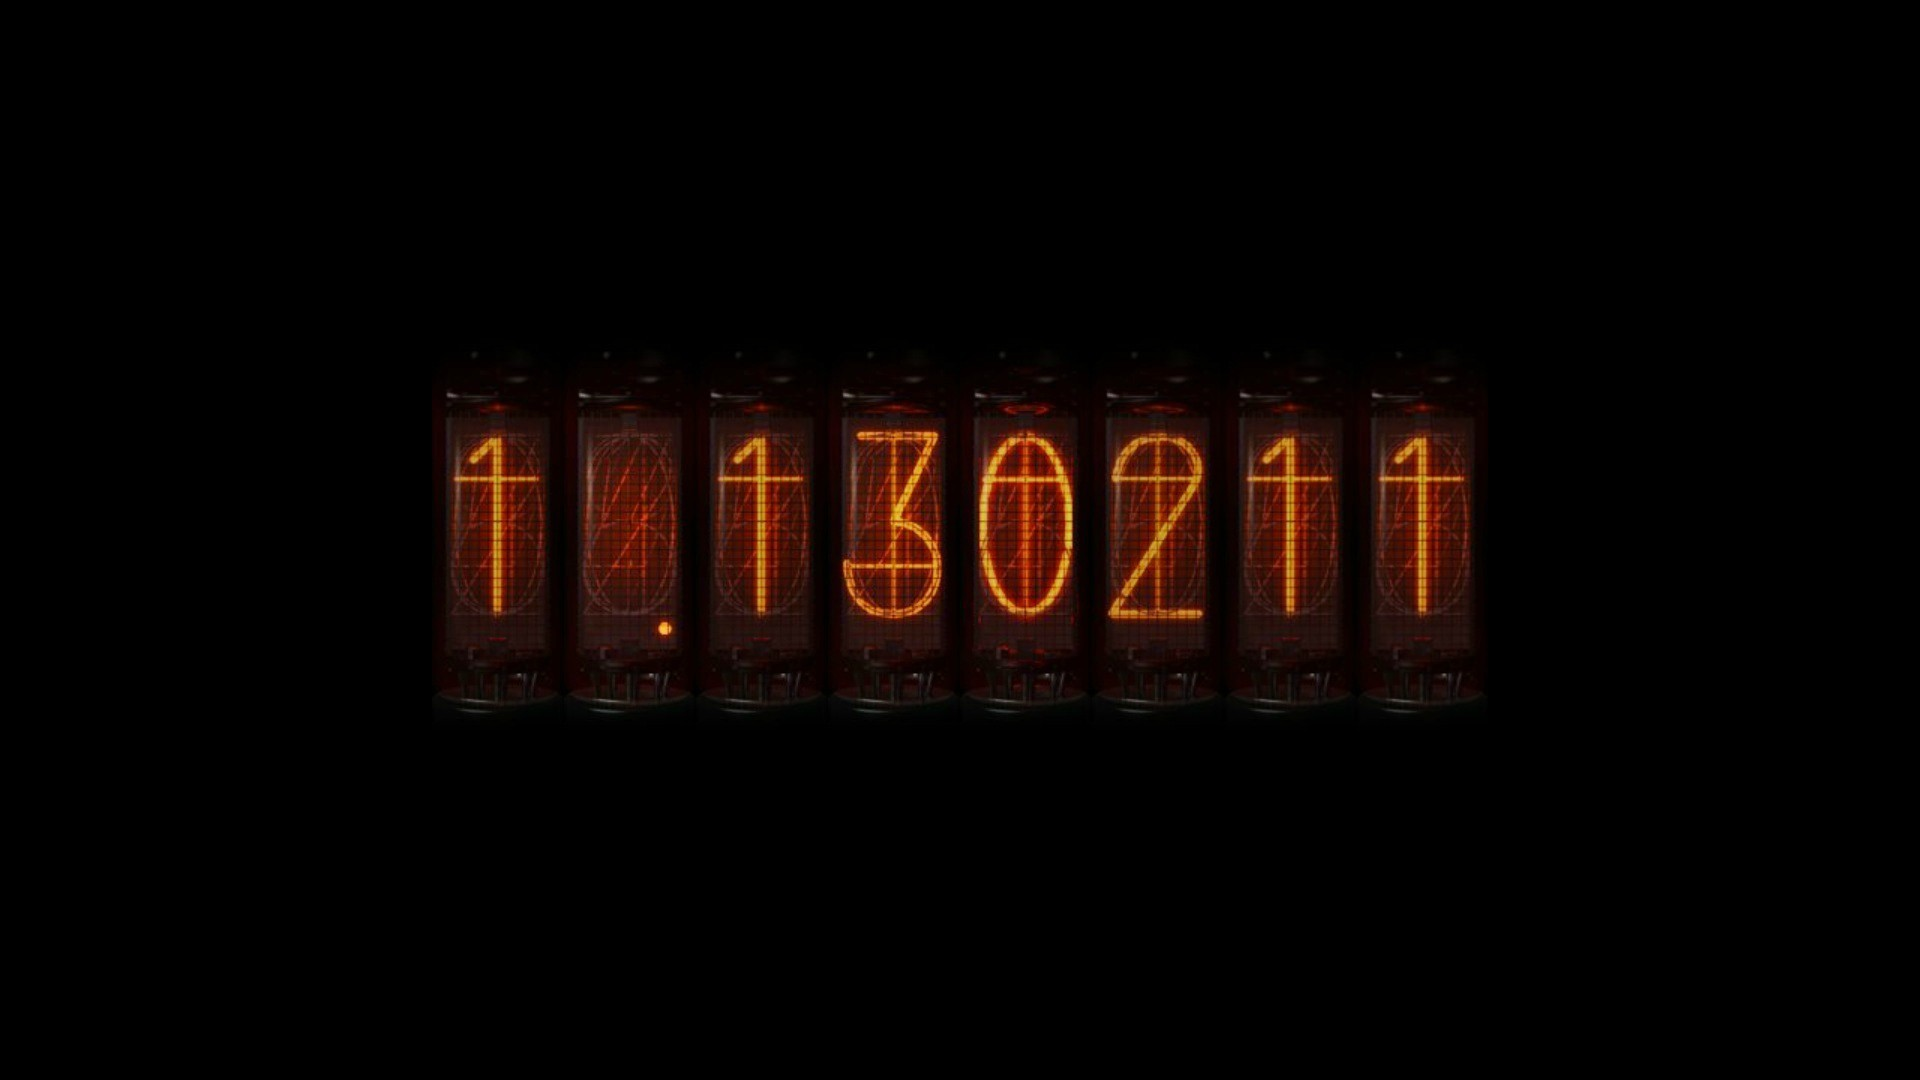 divergence meter steins;gate nixie tubes numbers time travel anime